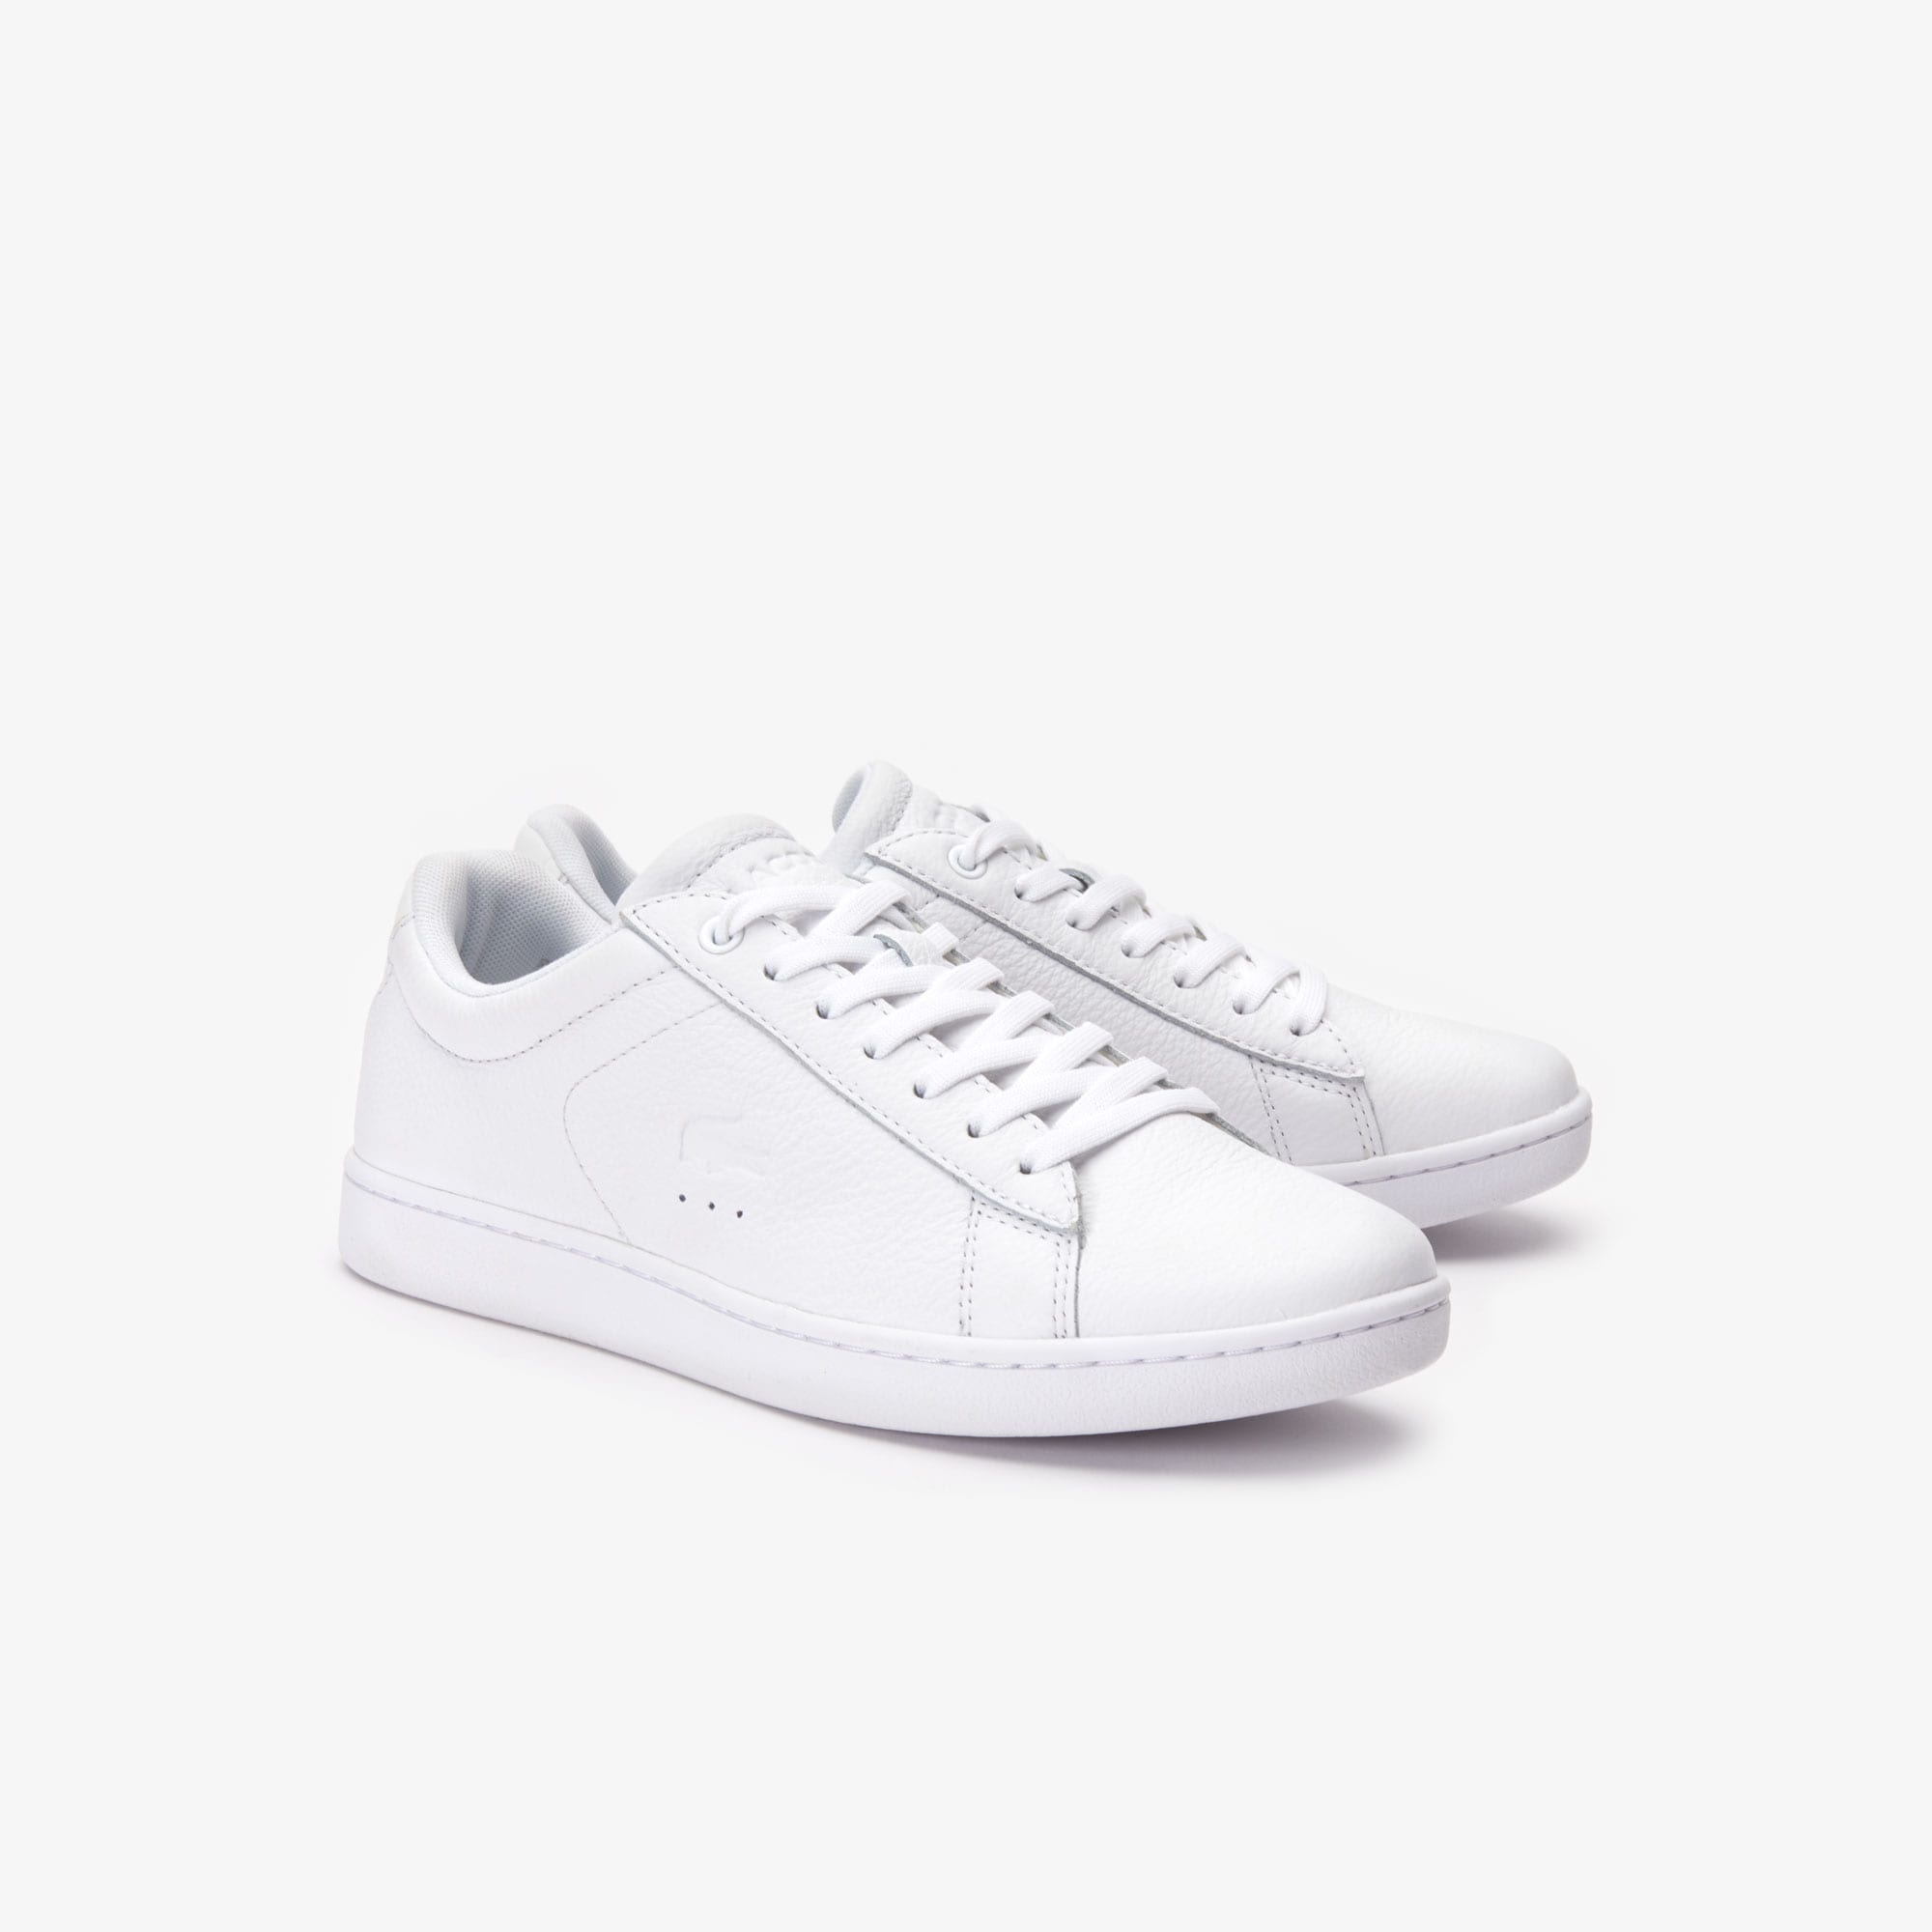 Women's Carnaby Evo Iridescent Leather Sneakers